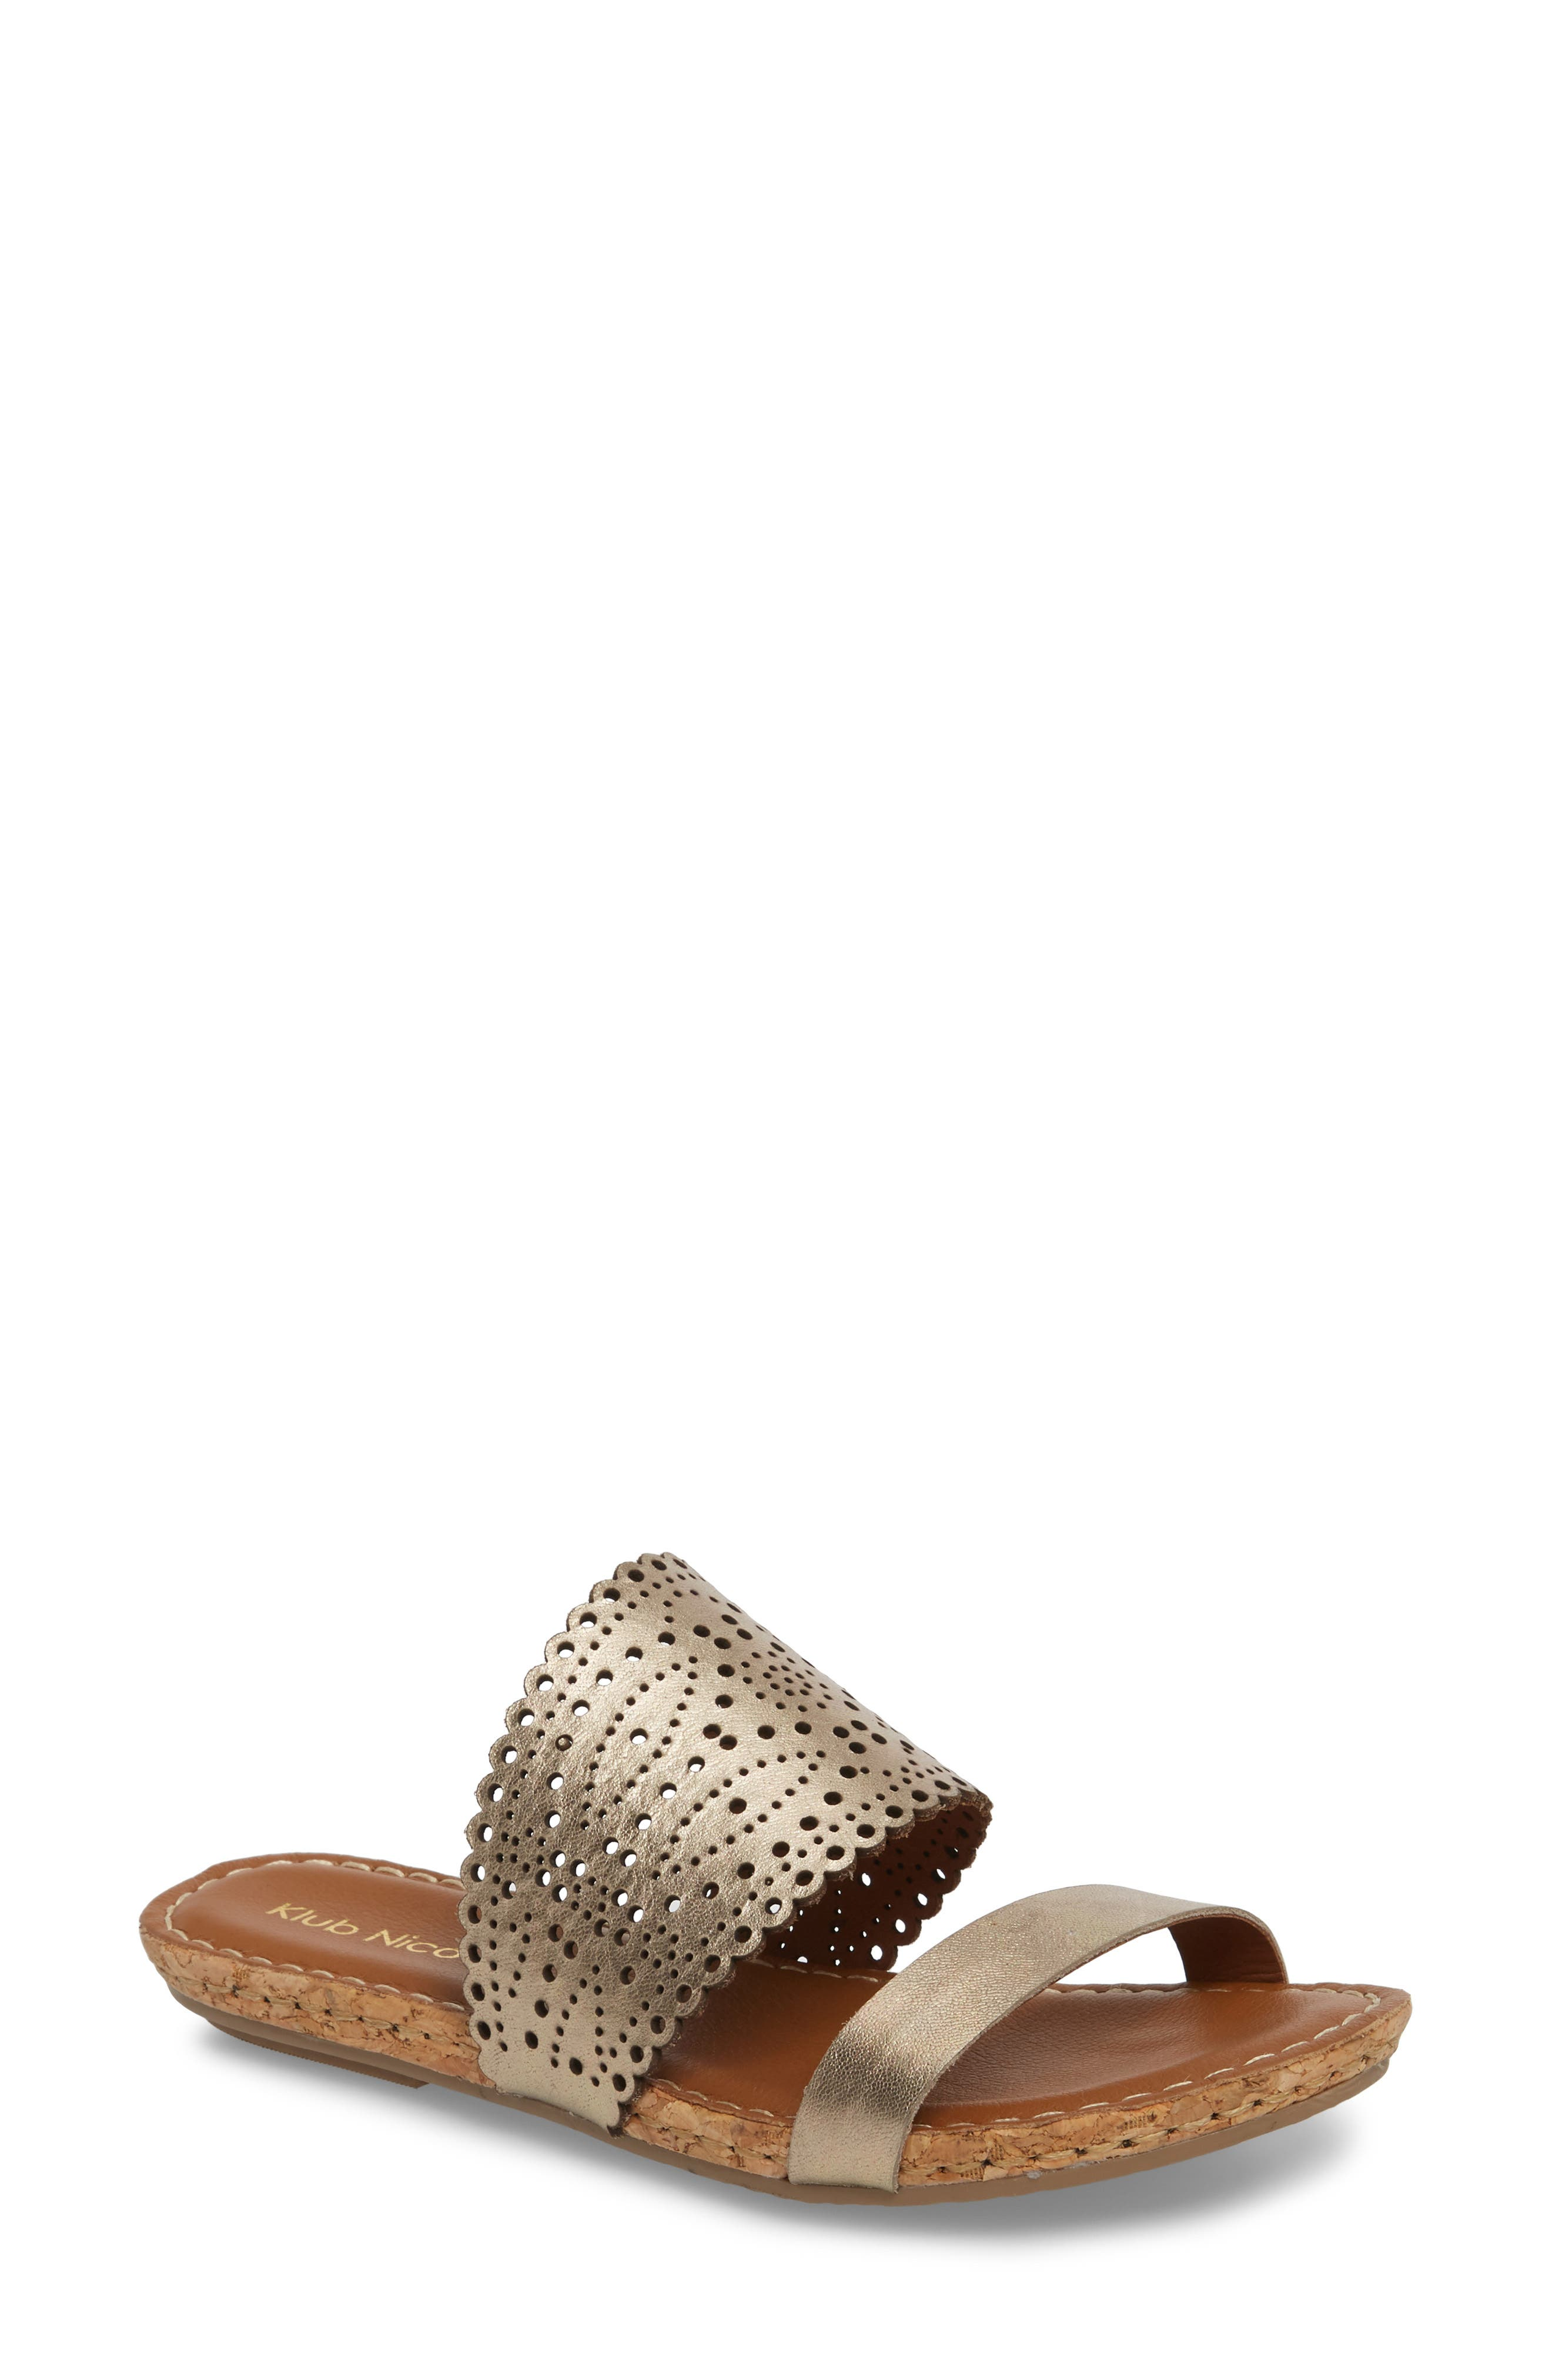 Ginette Perforated Slide Sandal,                             Main thumbnail 1, color,                             PEWTER LEATHER